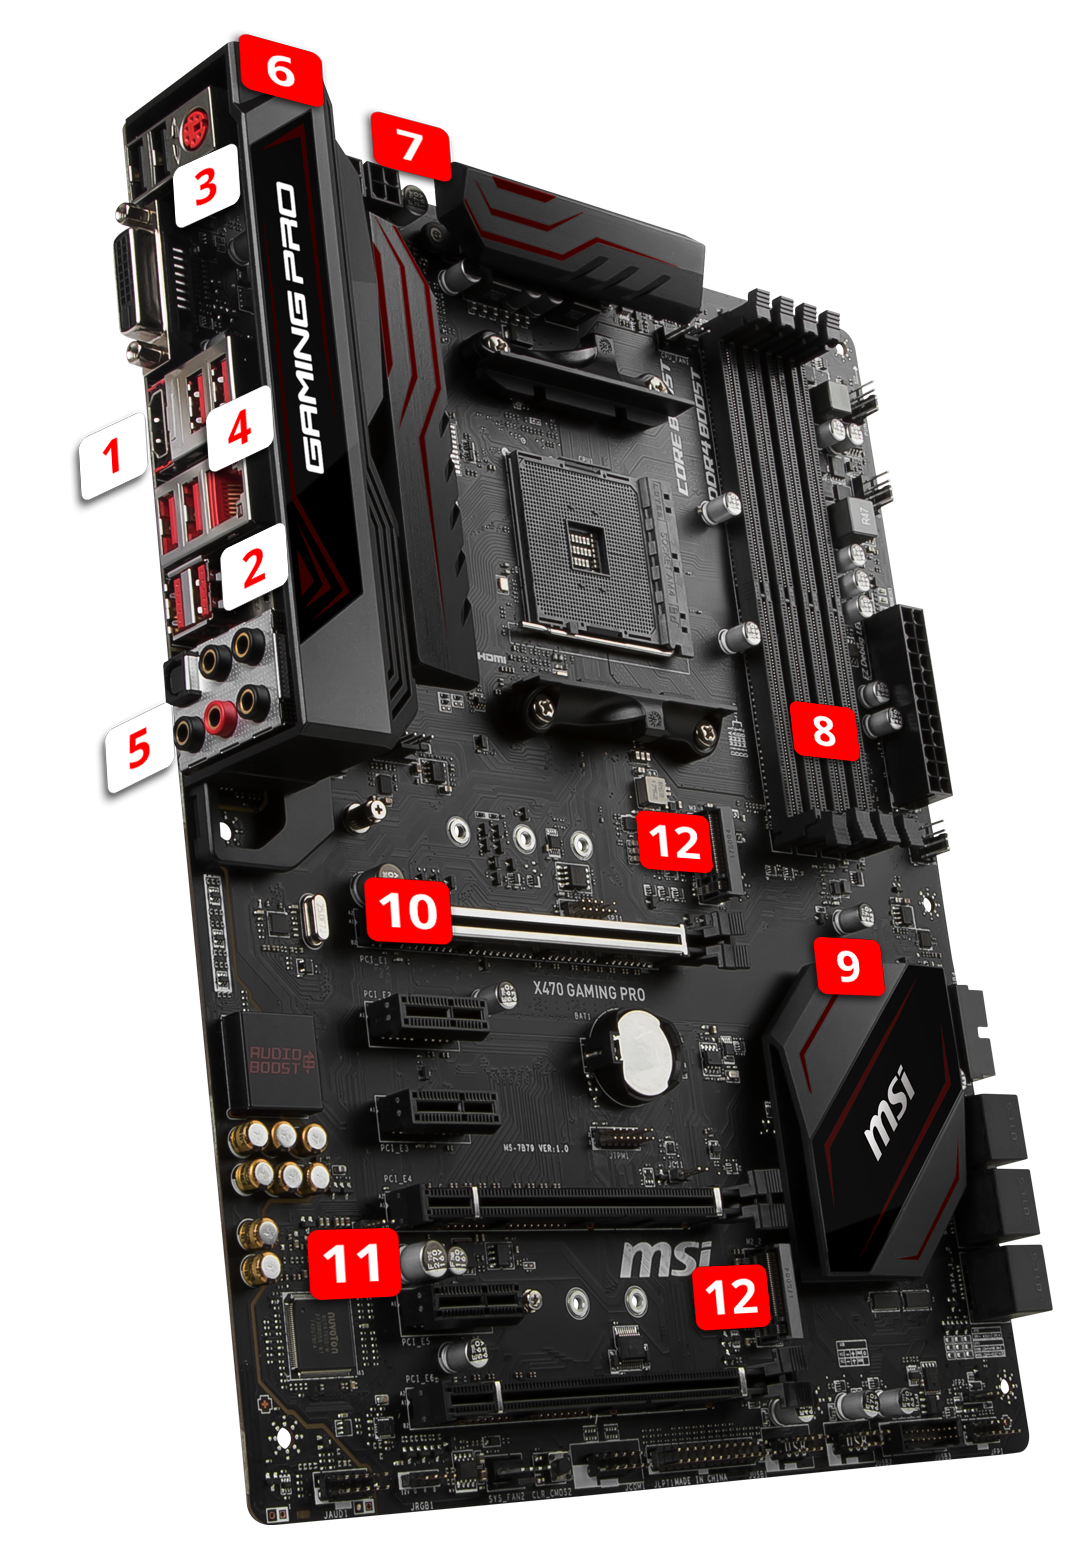 X470 GAMING PRO | Motherboard - The world leader in